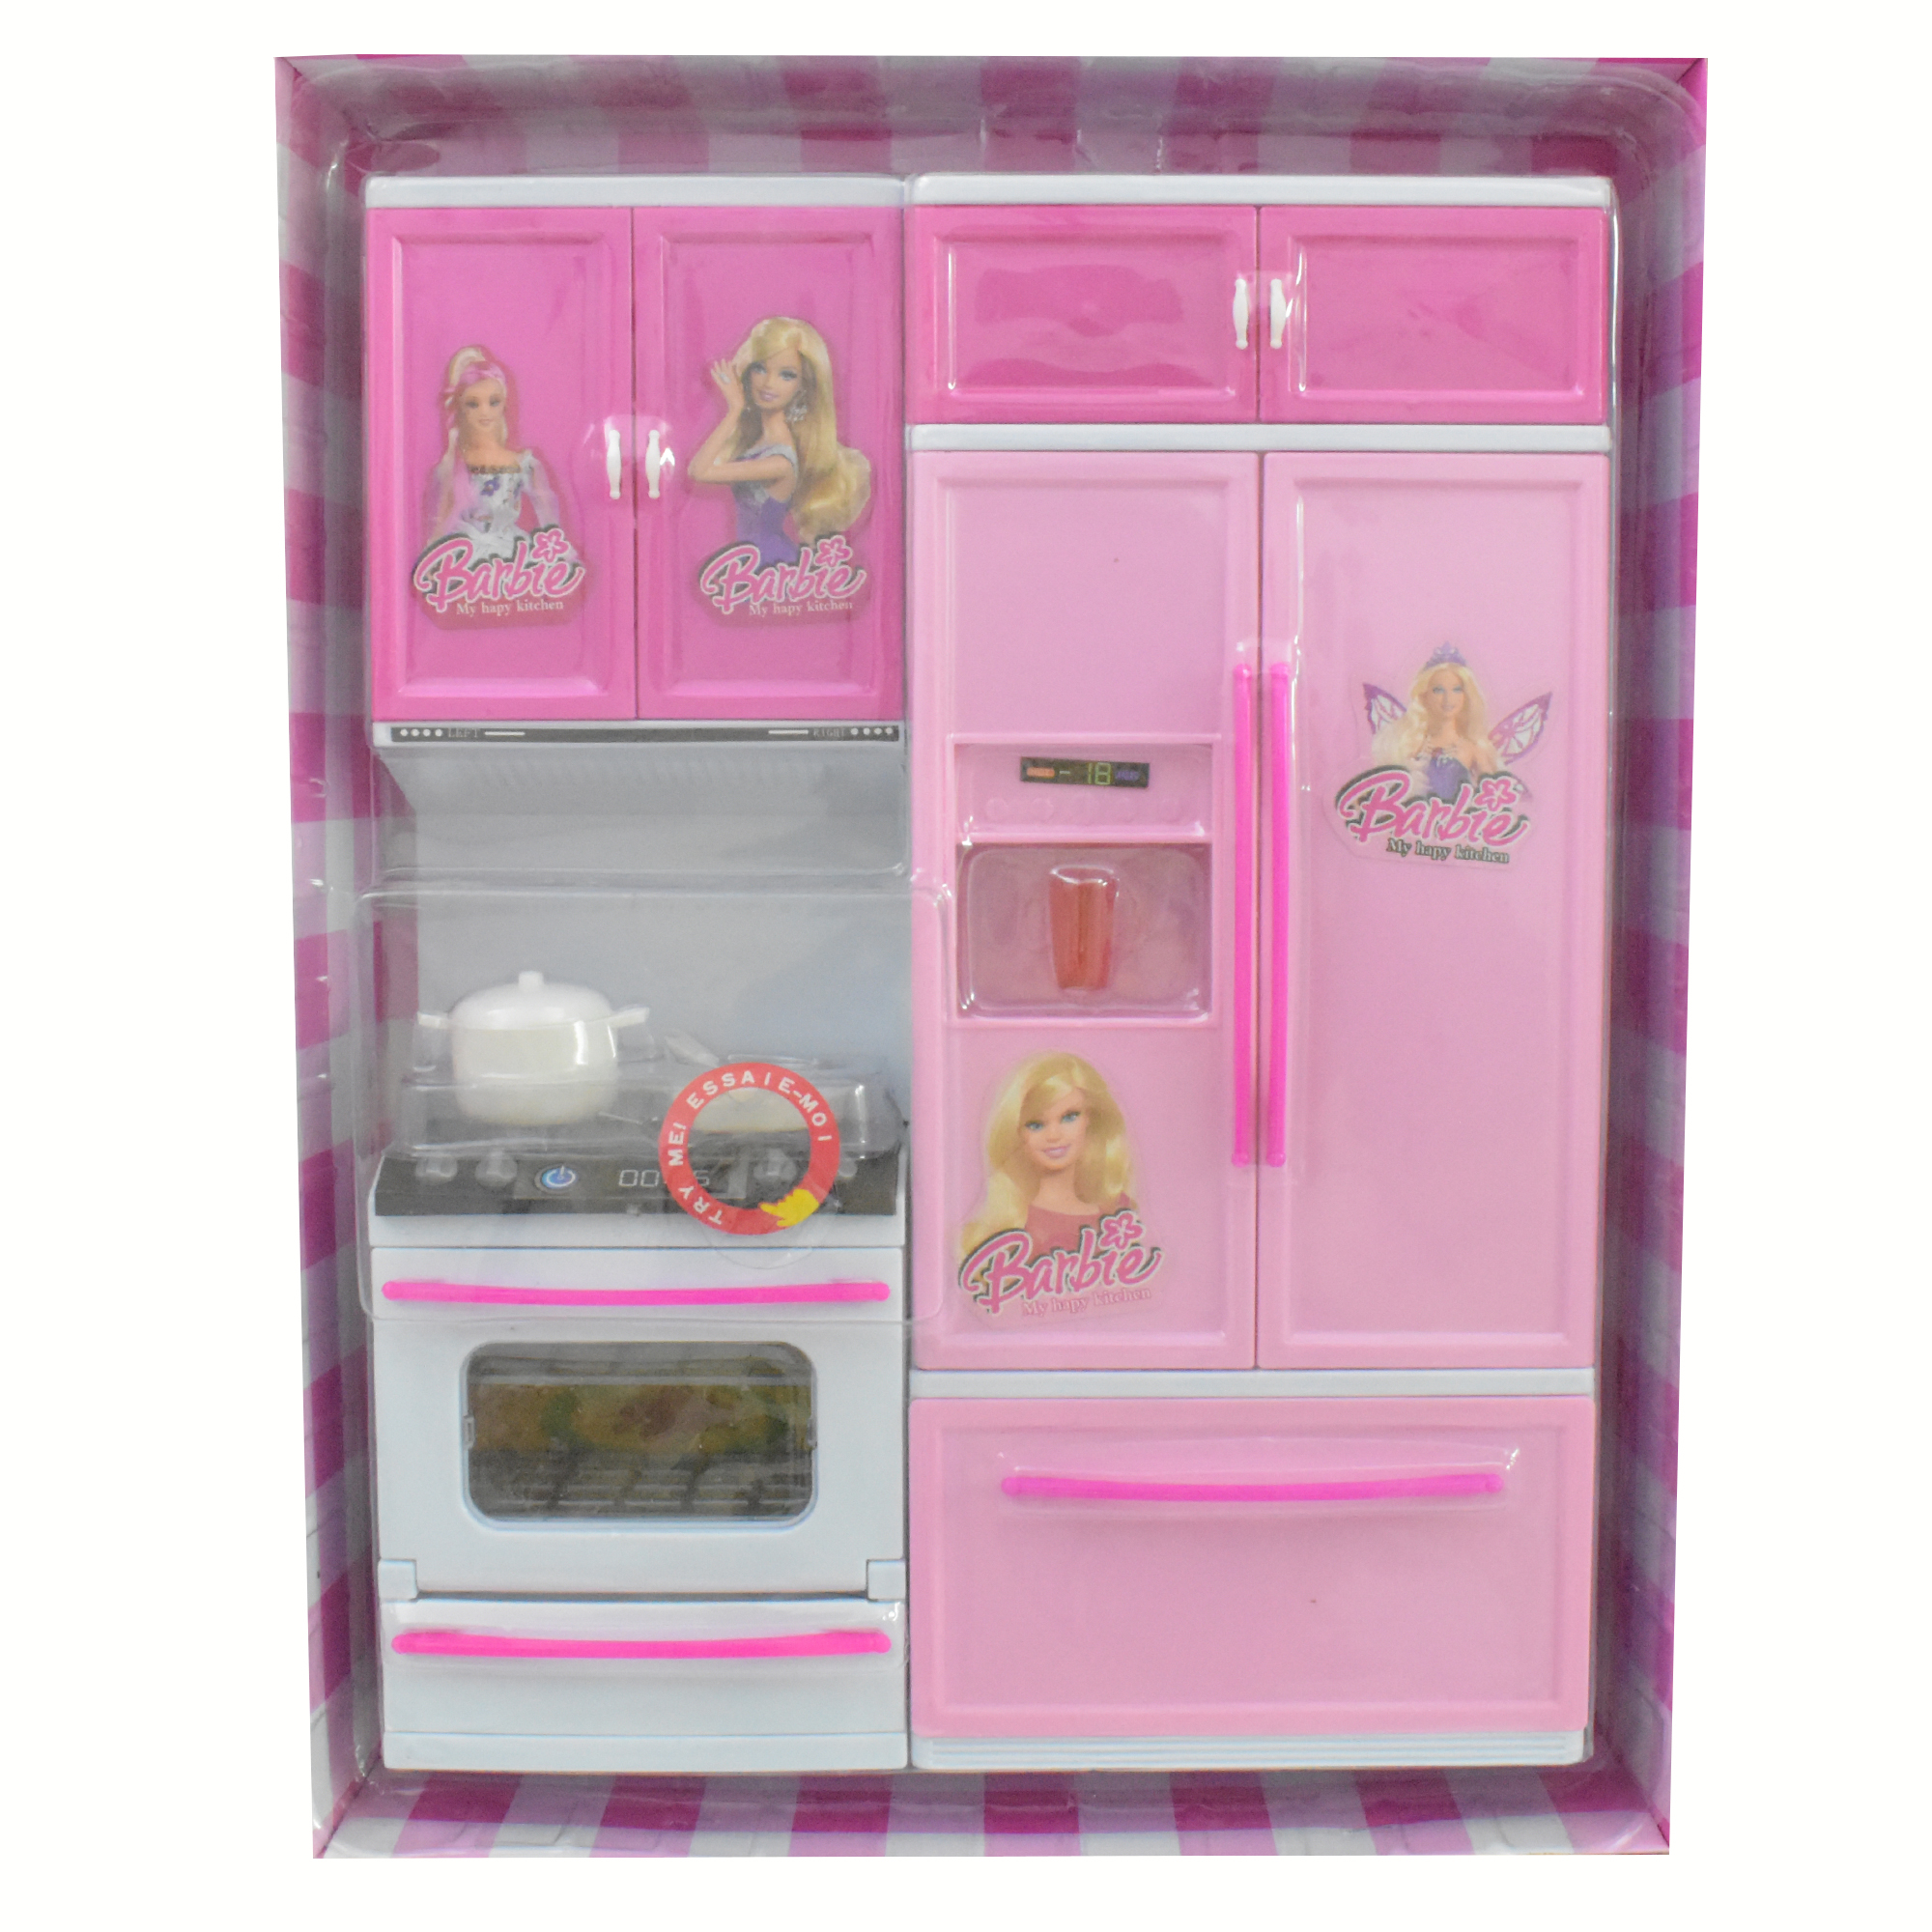 Barbie Modern Kitchen Set Toys For Girls 11s50 Itwarbazar Pk